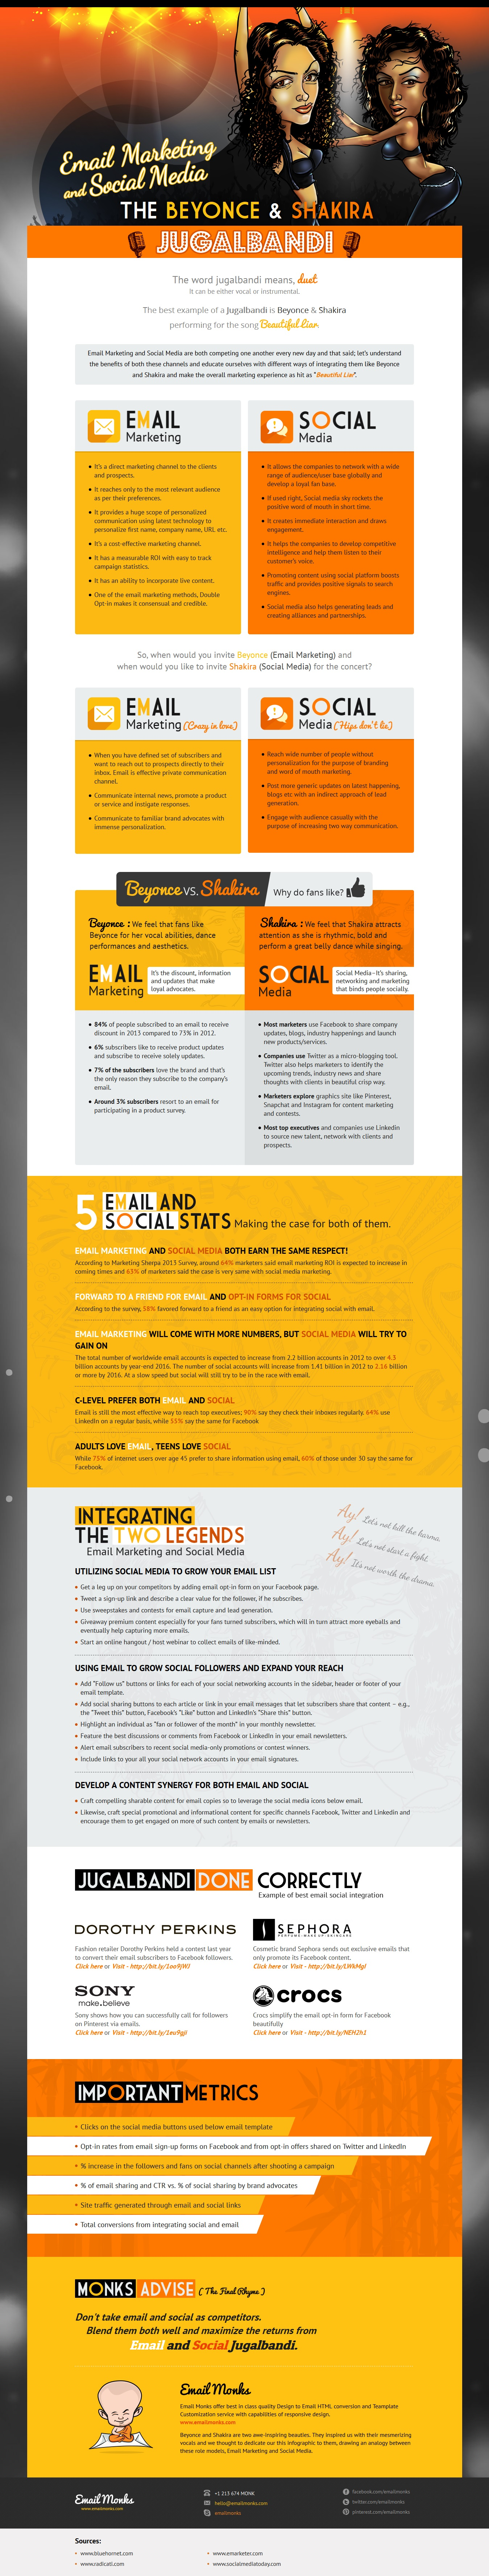 Infographic: Email Marketing and Social Media Jugalbandi - Worth watching performance